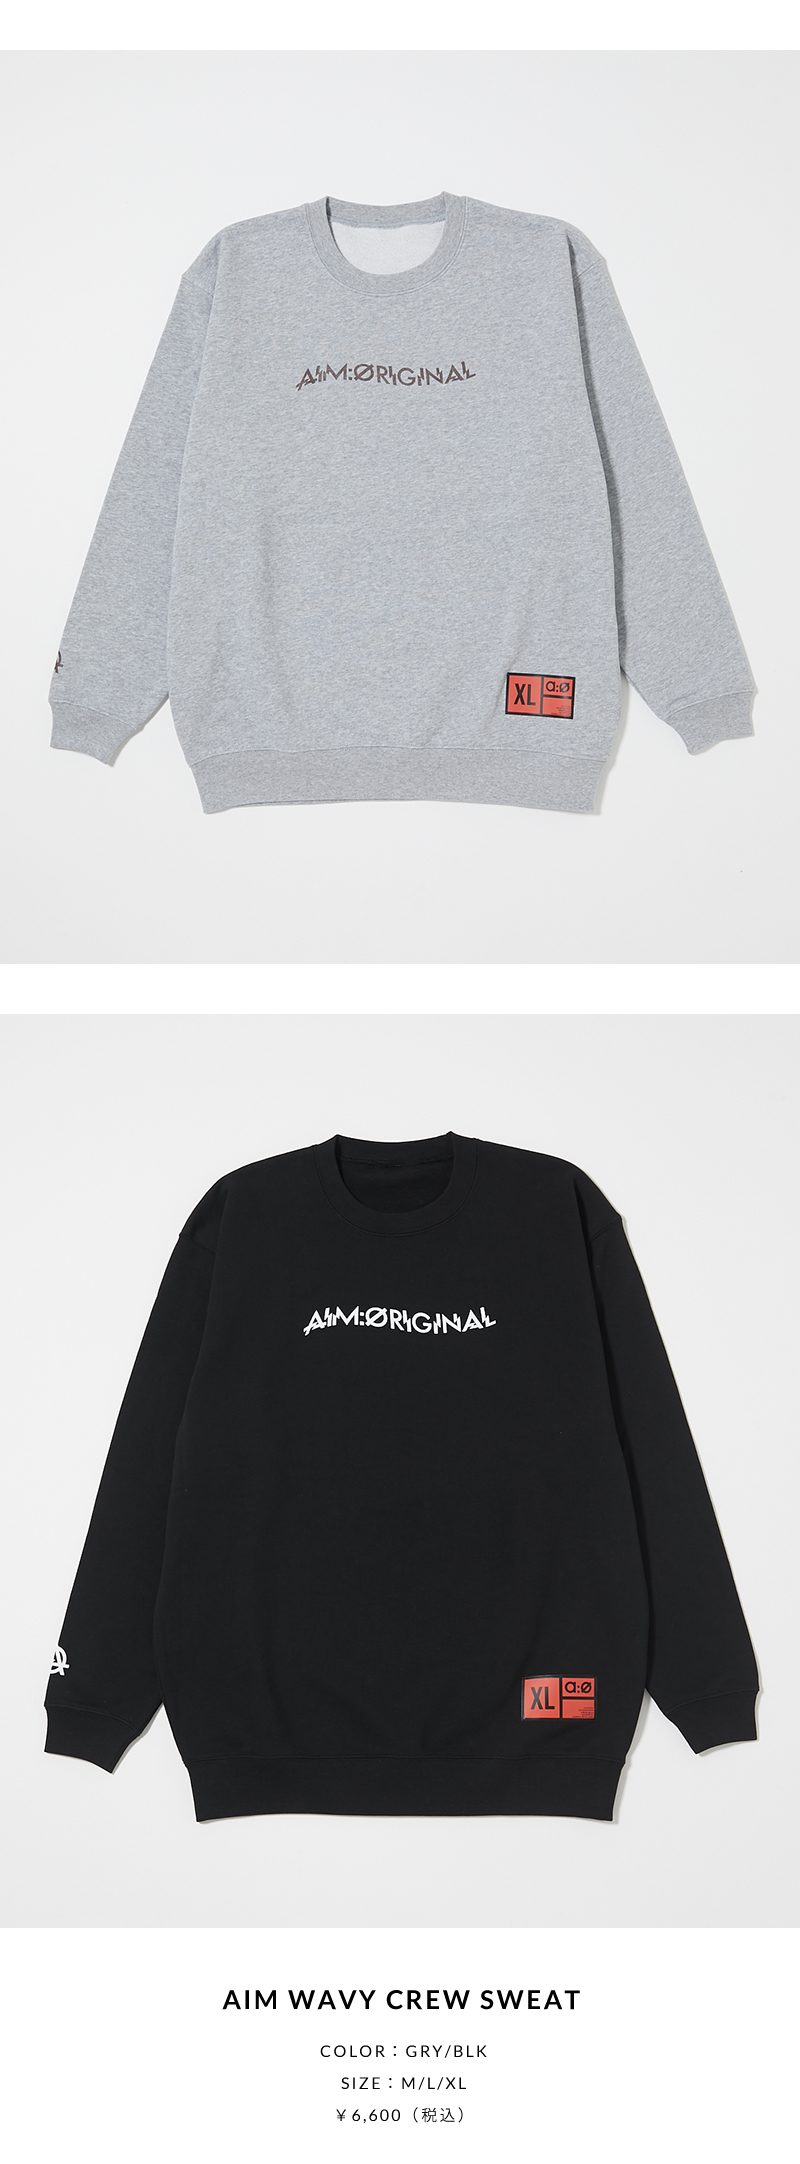 AIM WAVY CREW SWEAT